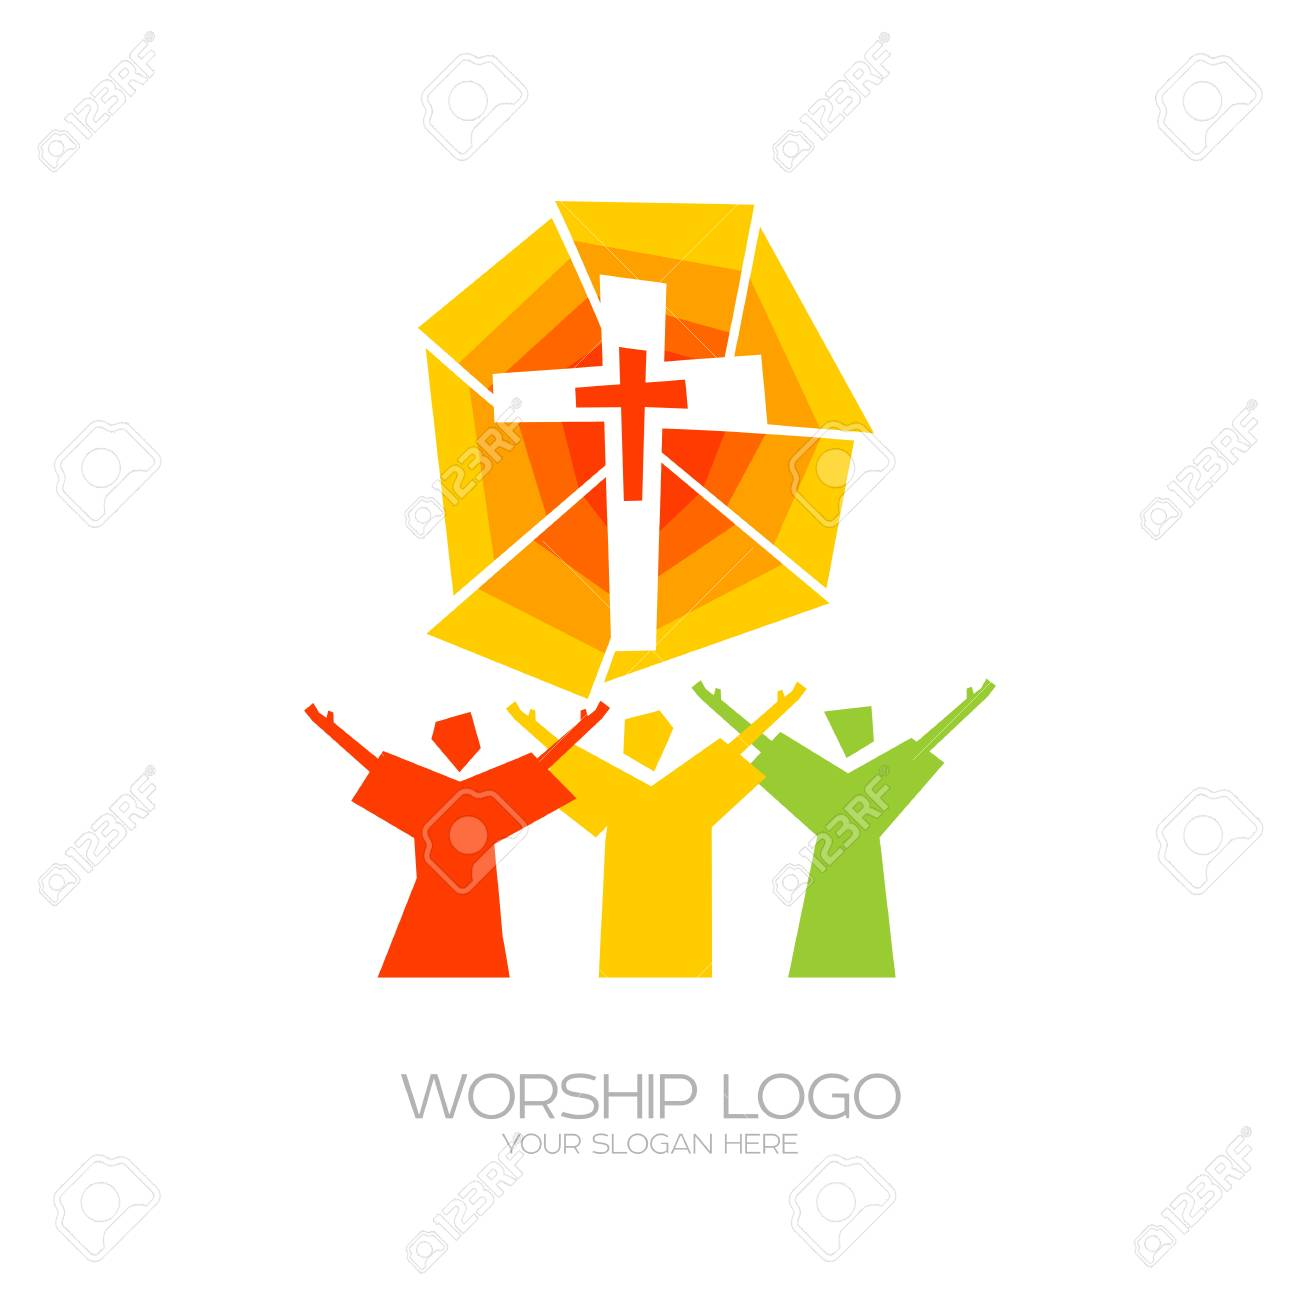 Worship icon. Christian symbols. People worship Jesus Christ.